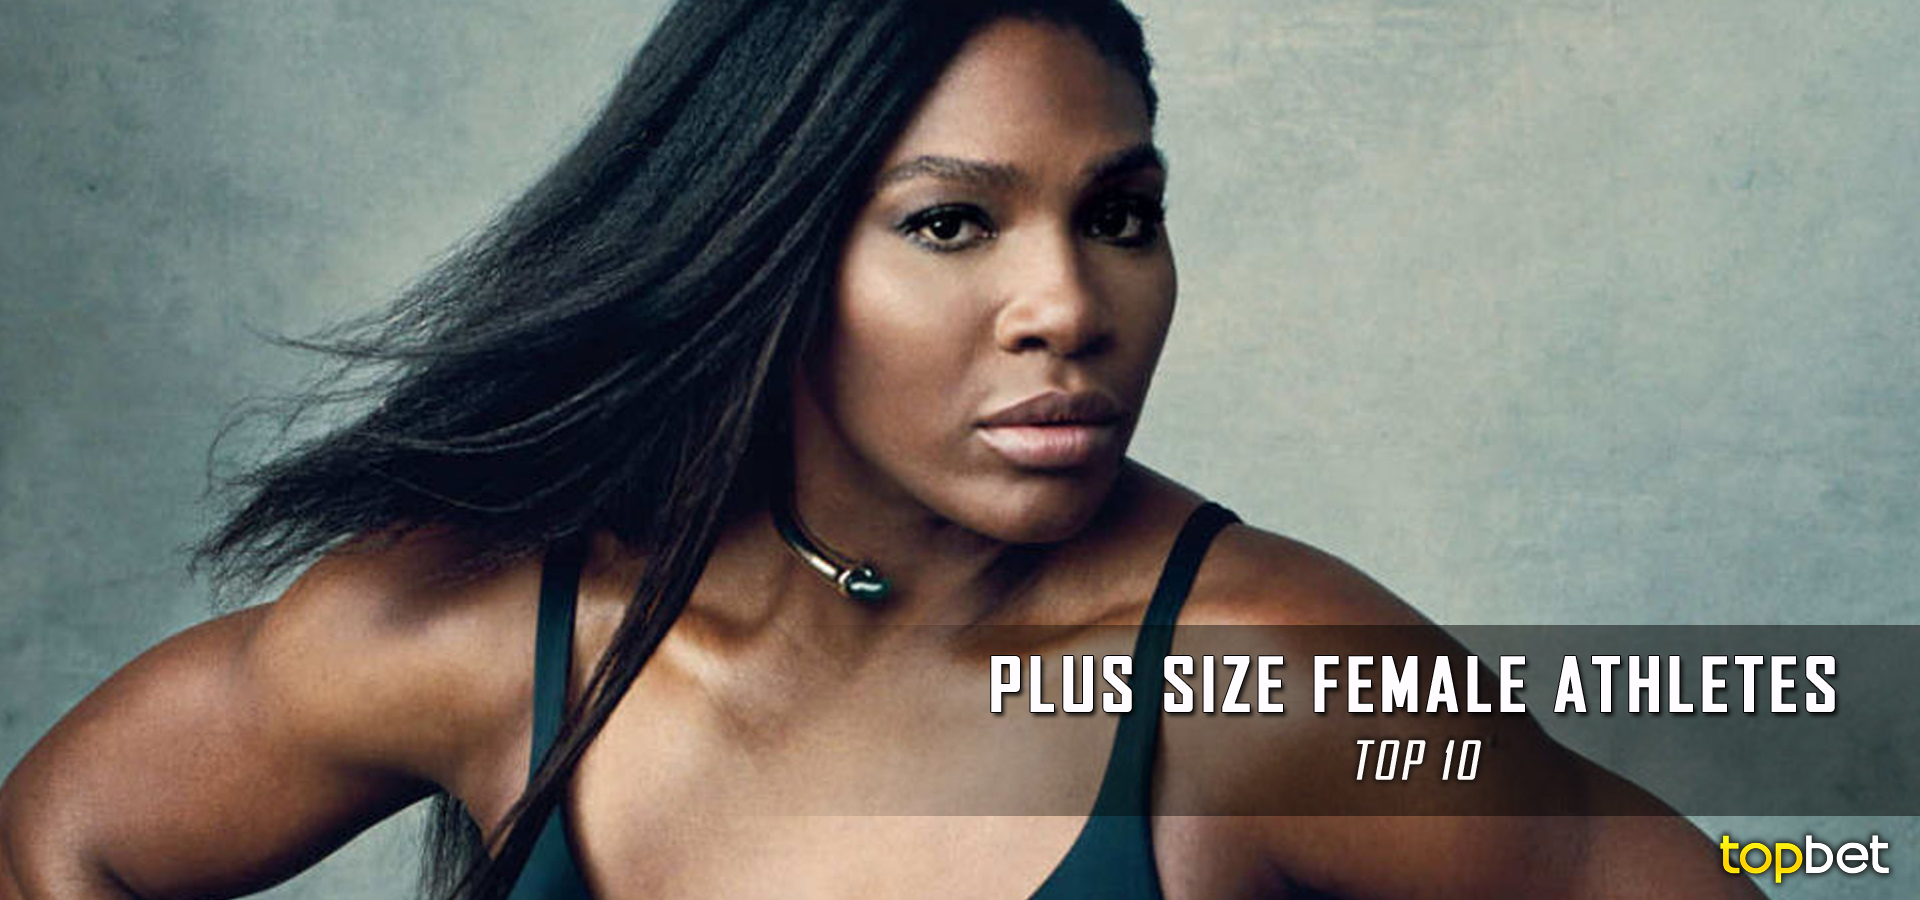 Hottest Plus Size Women in Sports / Female Athletes